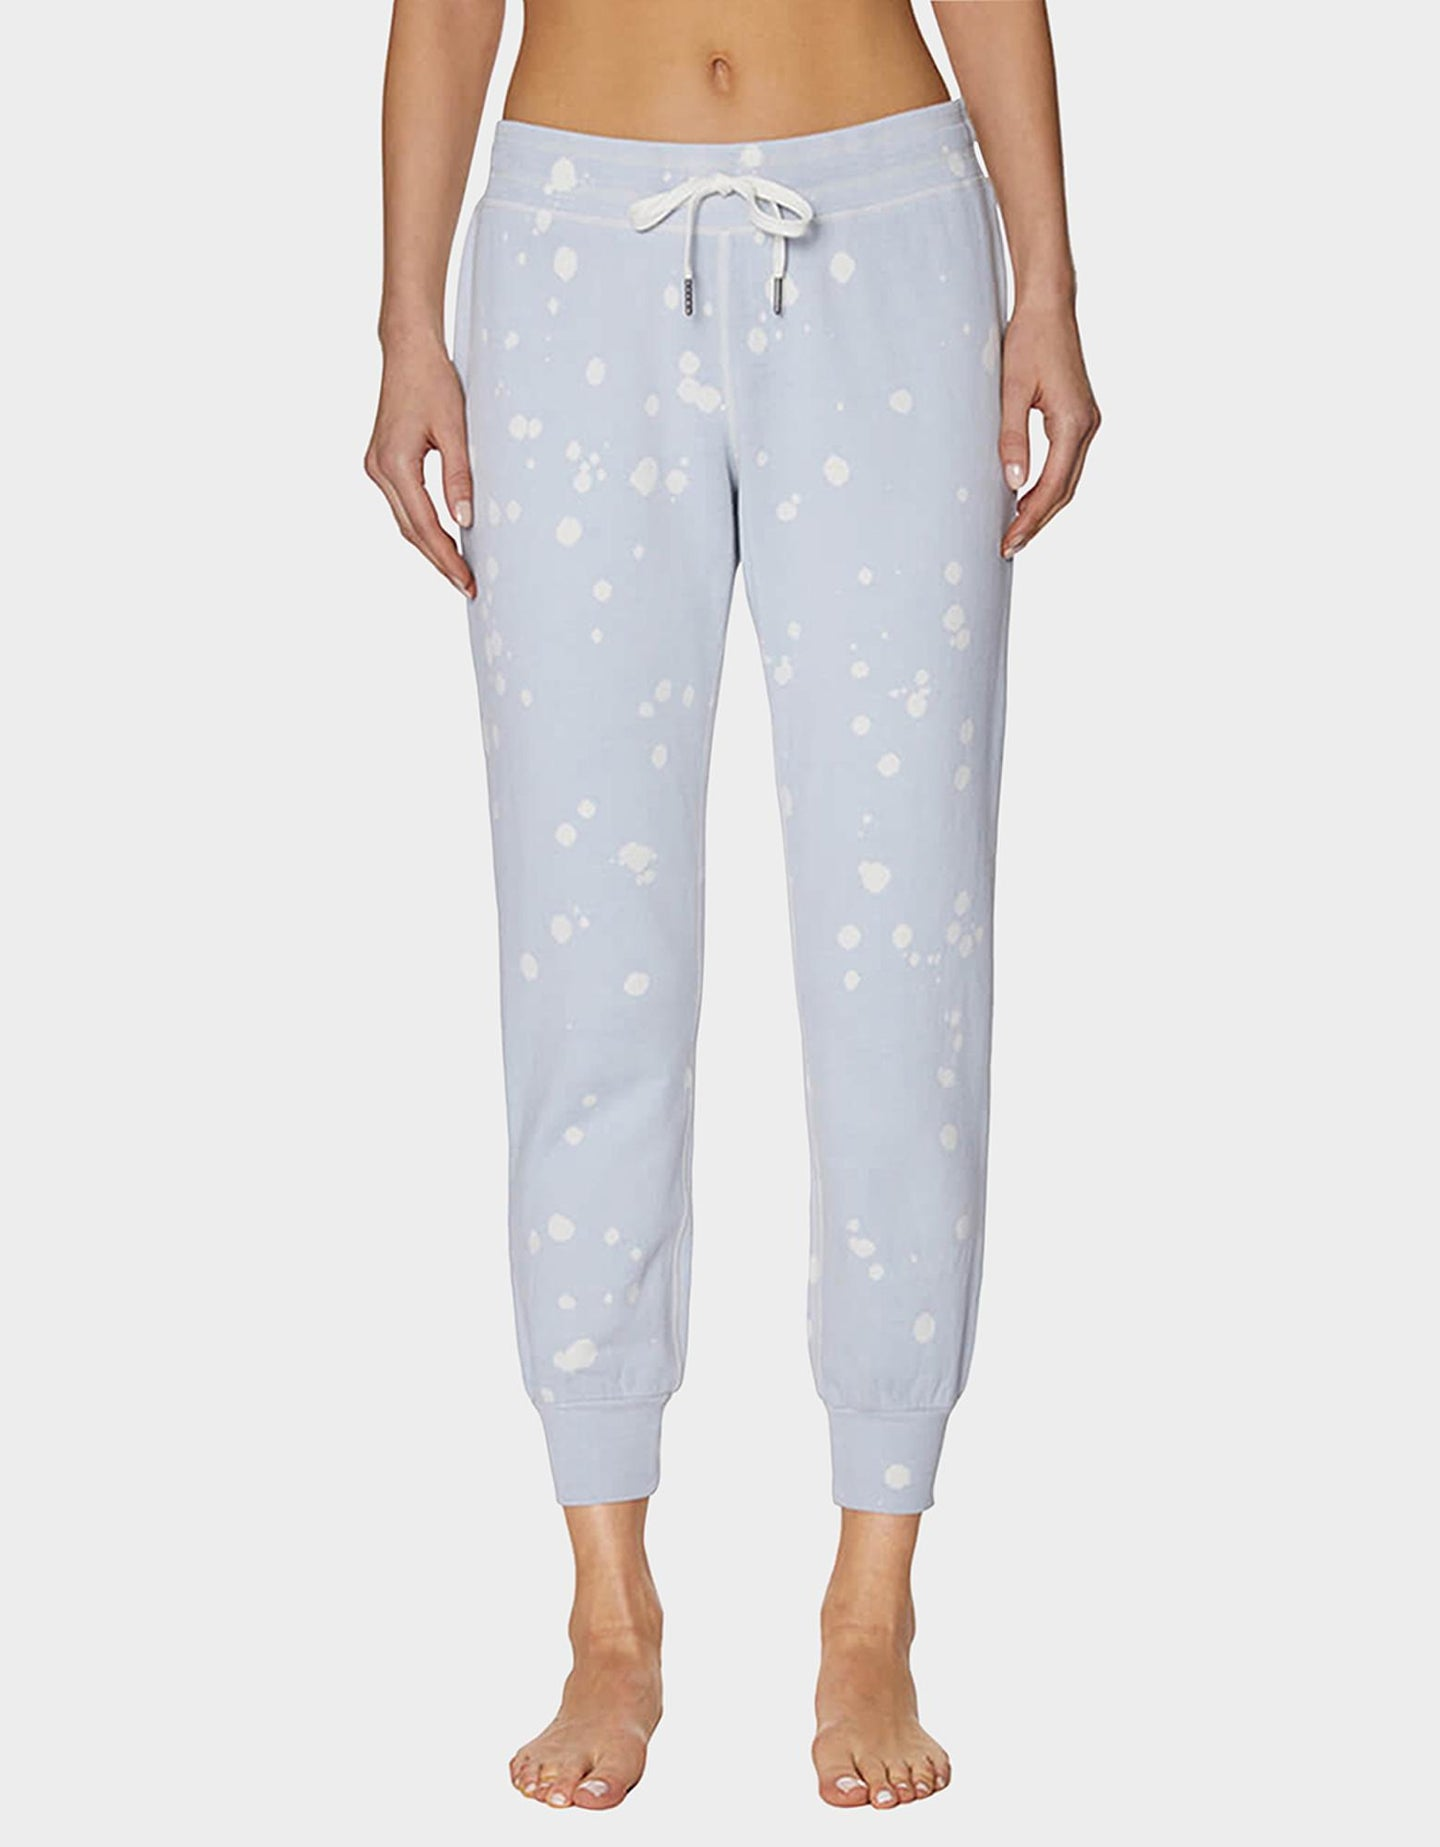 BLEACH TIE DYE SKINNY SWEATPANT SILVER - APPAREL - Betsey Johnson